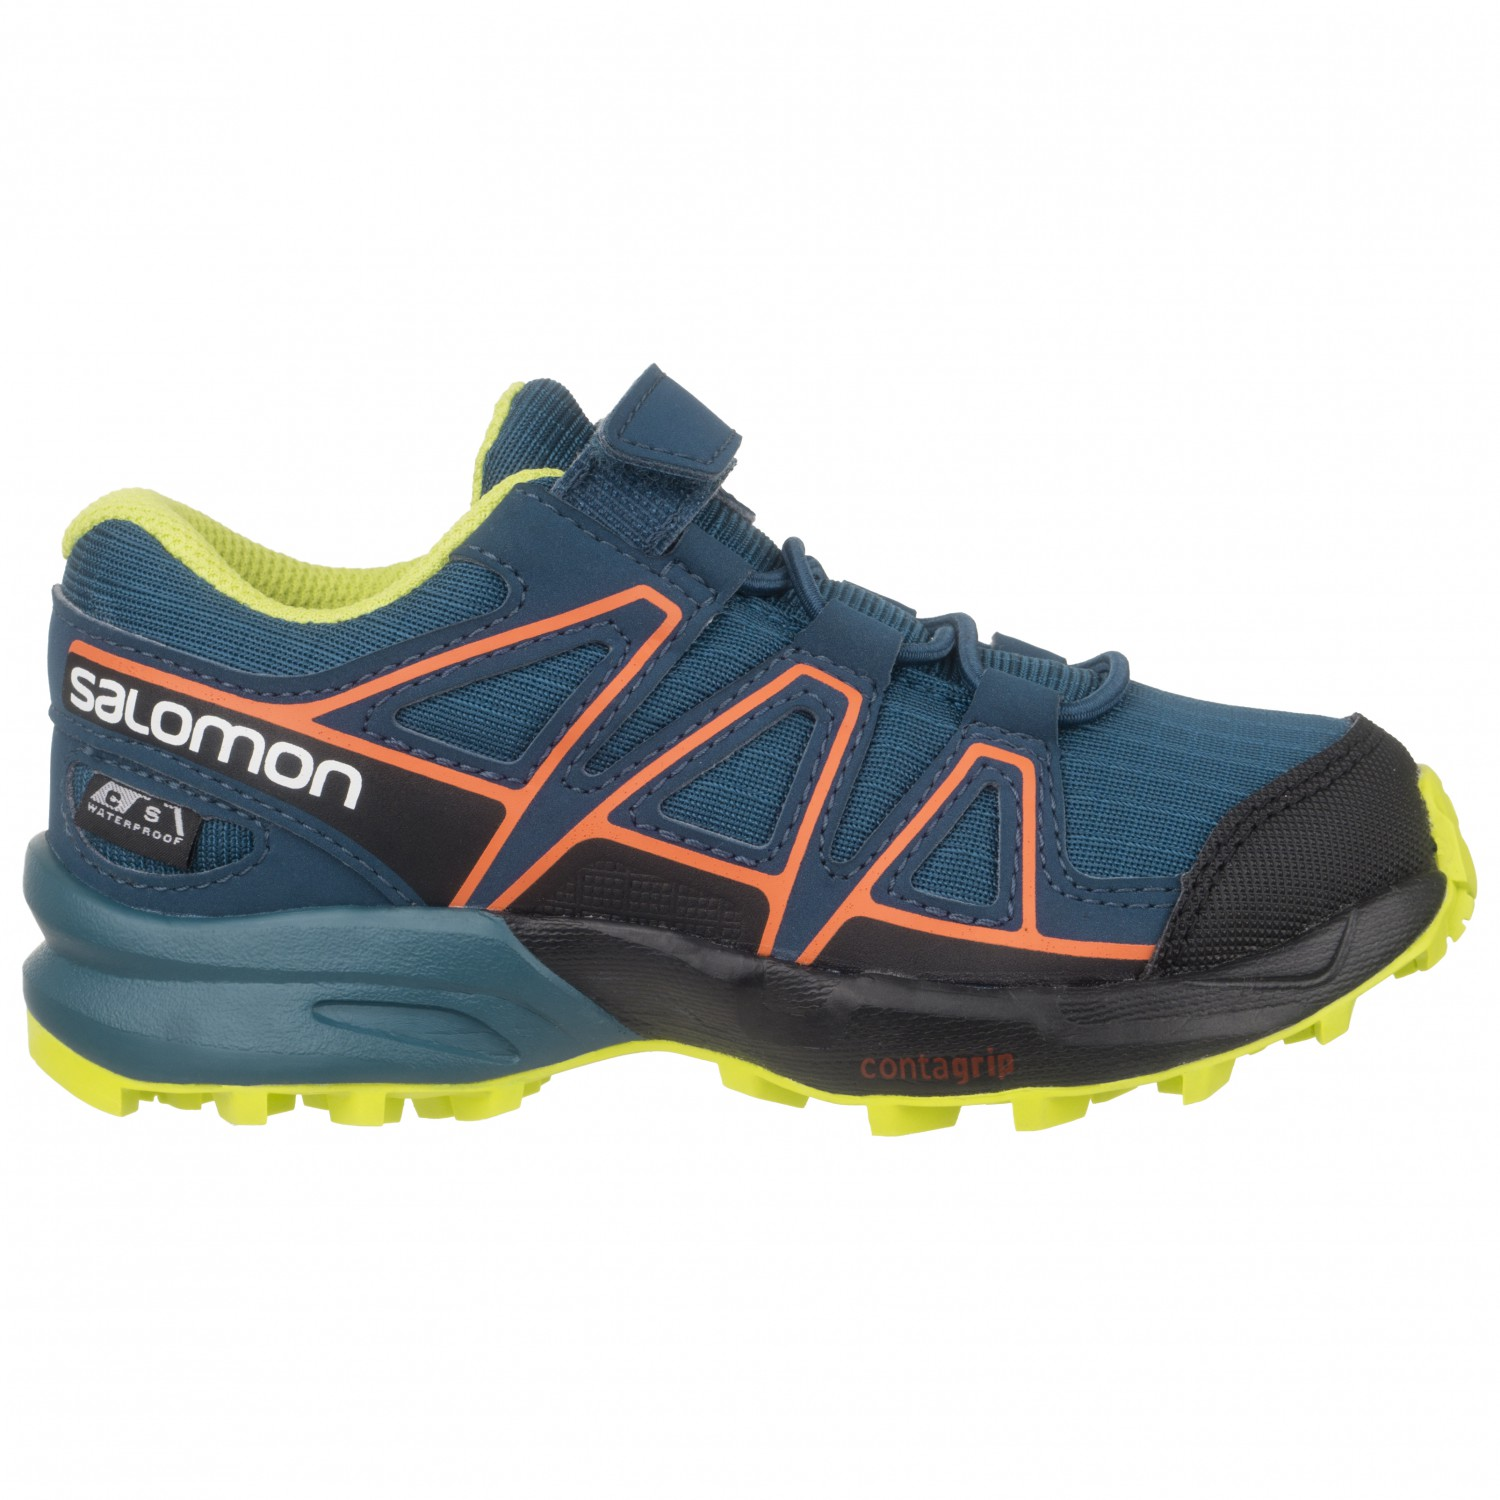 Salomon XT Calcita GTX Herren Outdoor Schuhe Salomon